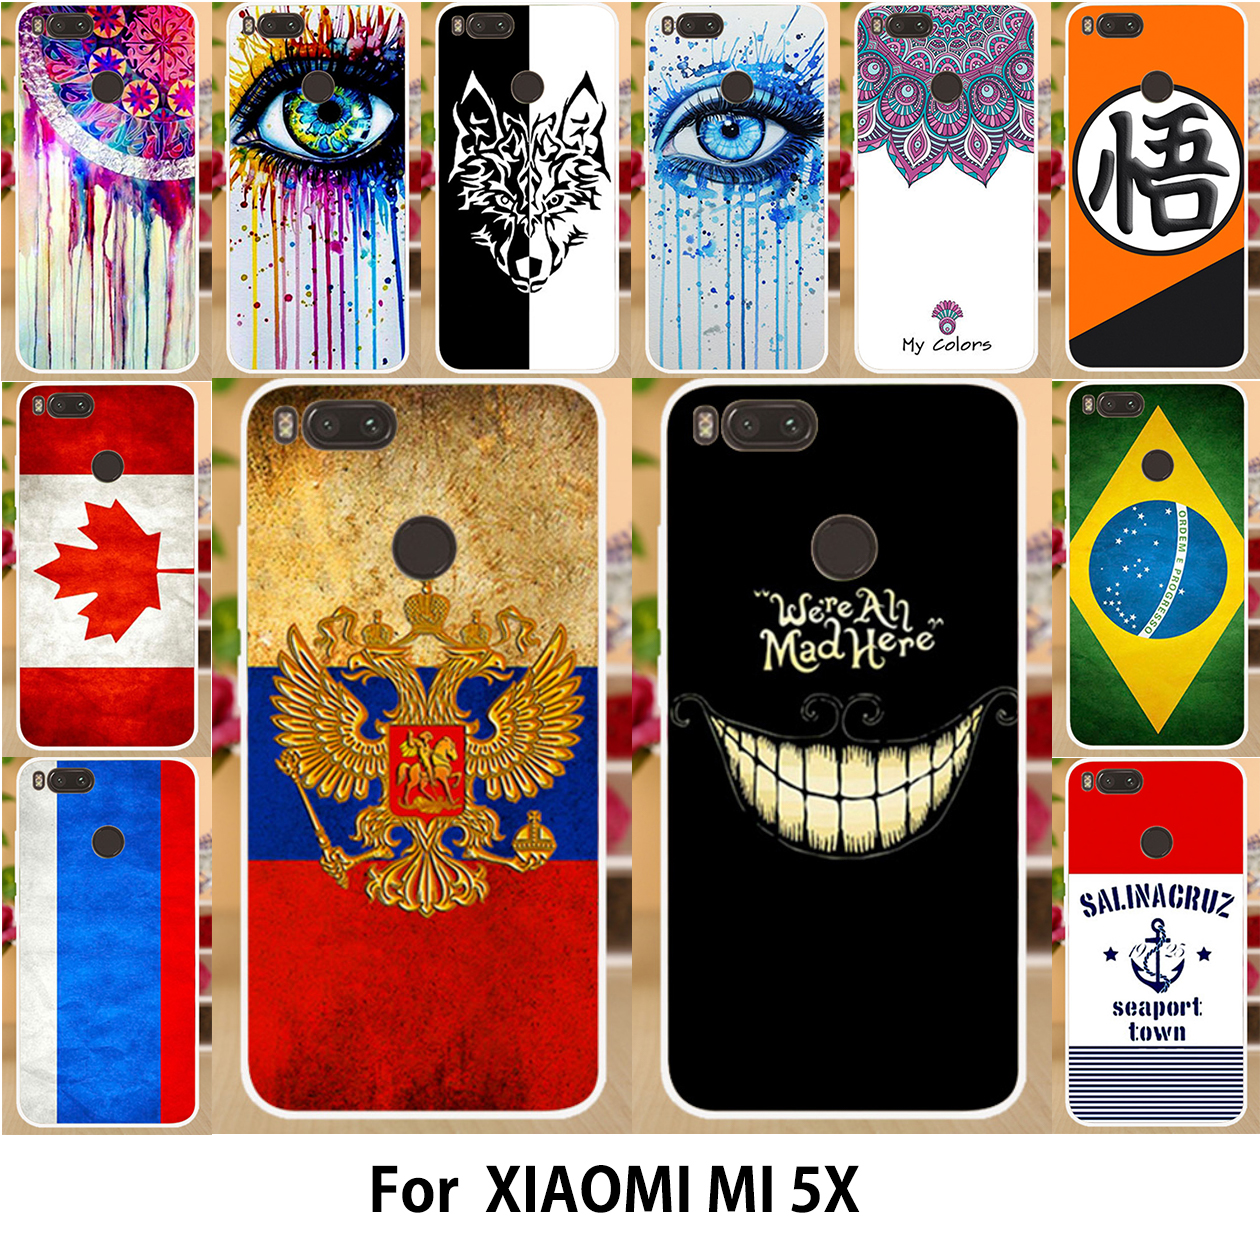 AKABEILA TPU Cases Xiaomi Mi A1 Case Silicon MiA1 Mi 5X Cover Cute Mi5X National Flag Smiling Face Patterns Phone Shell